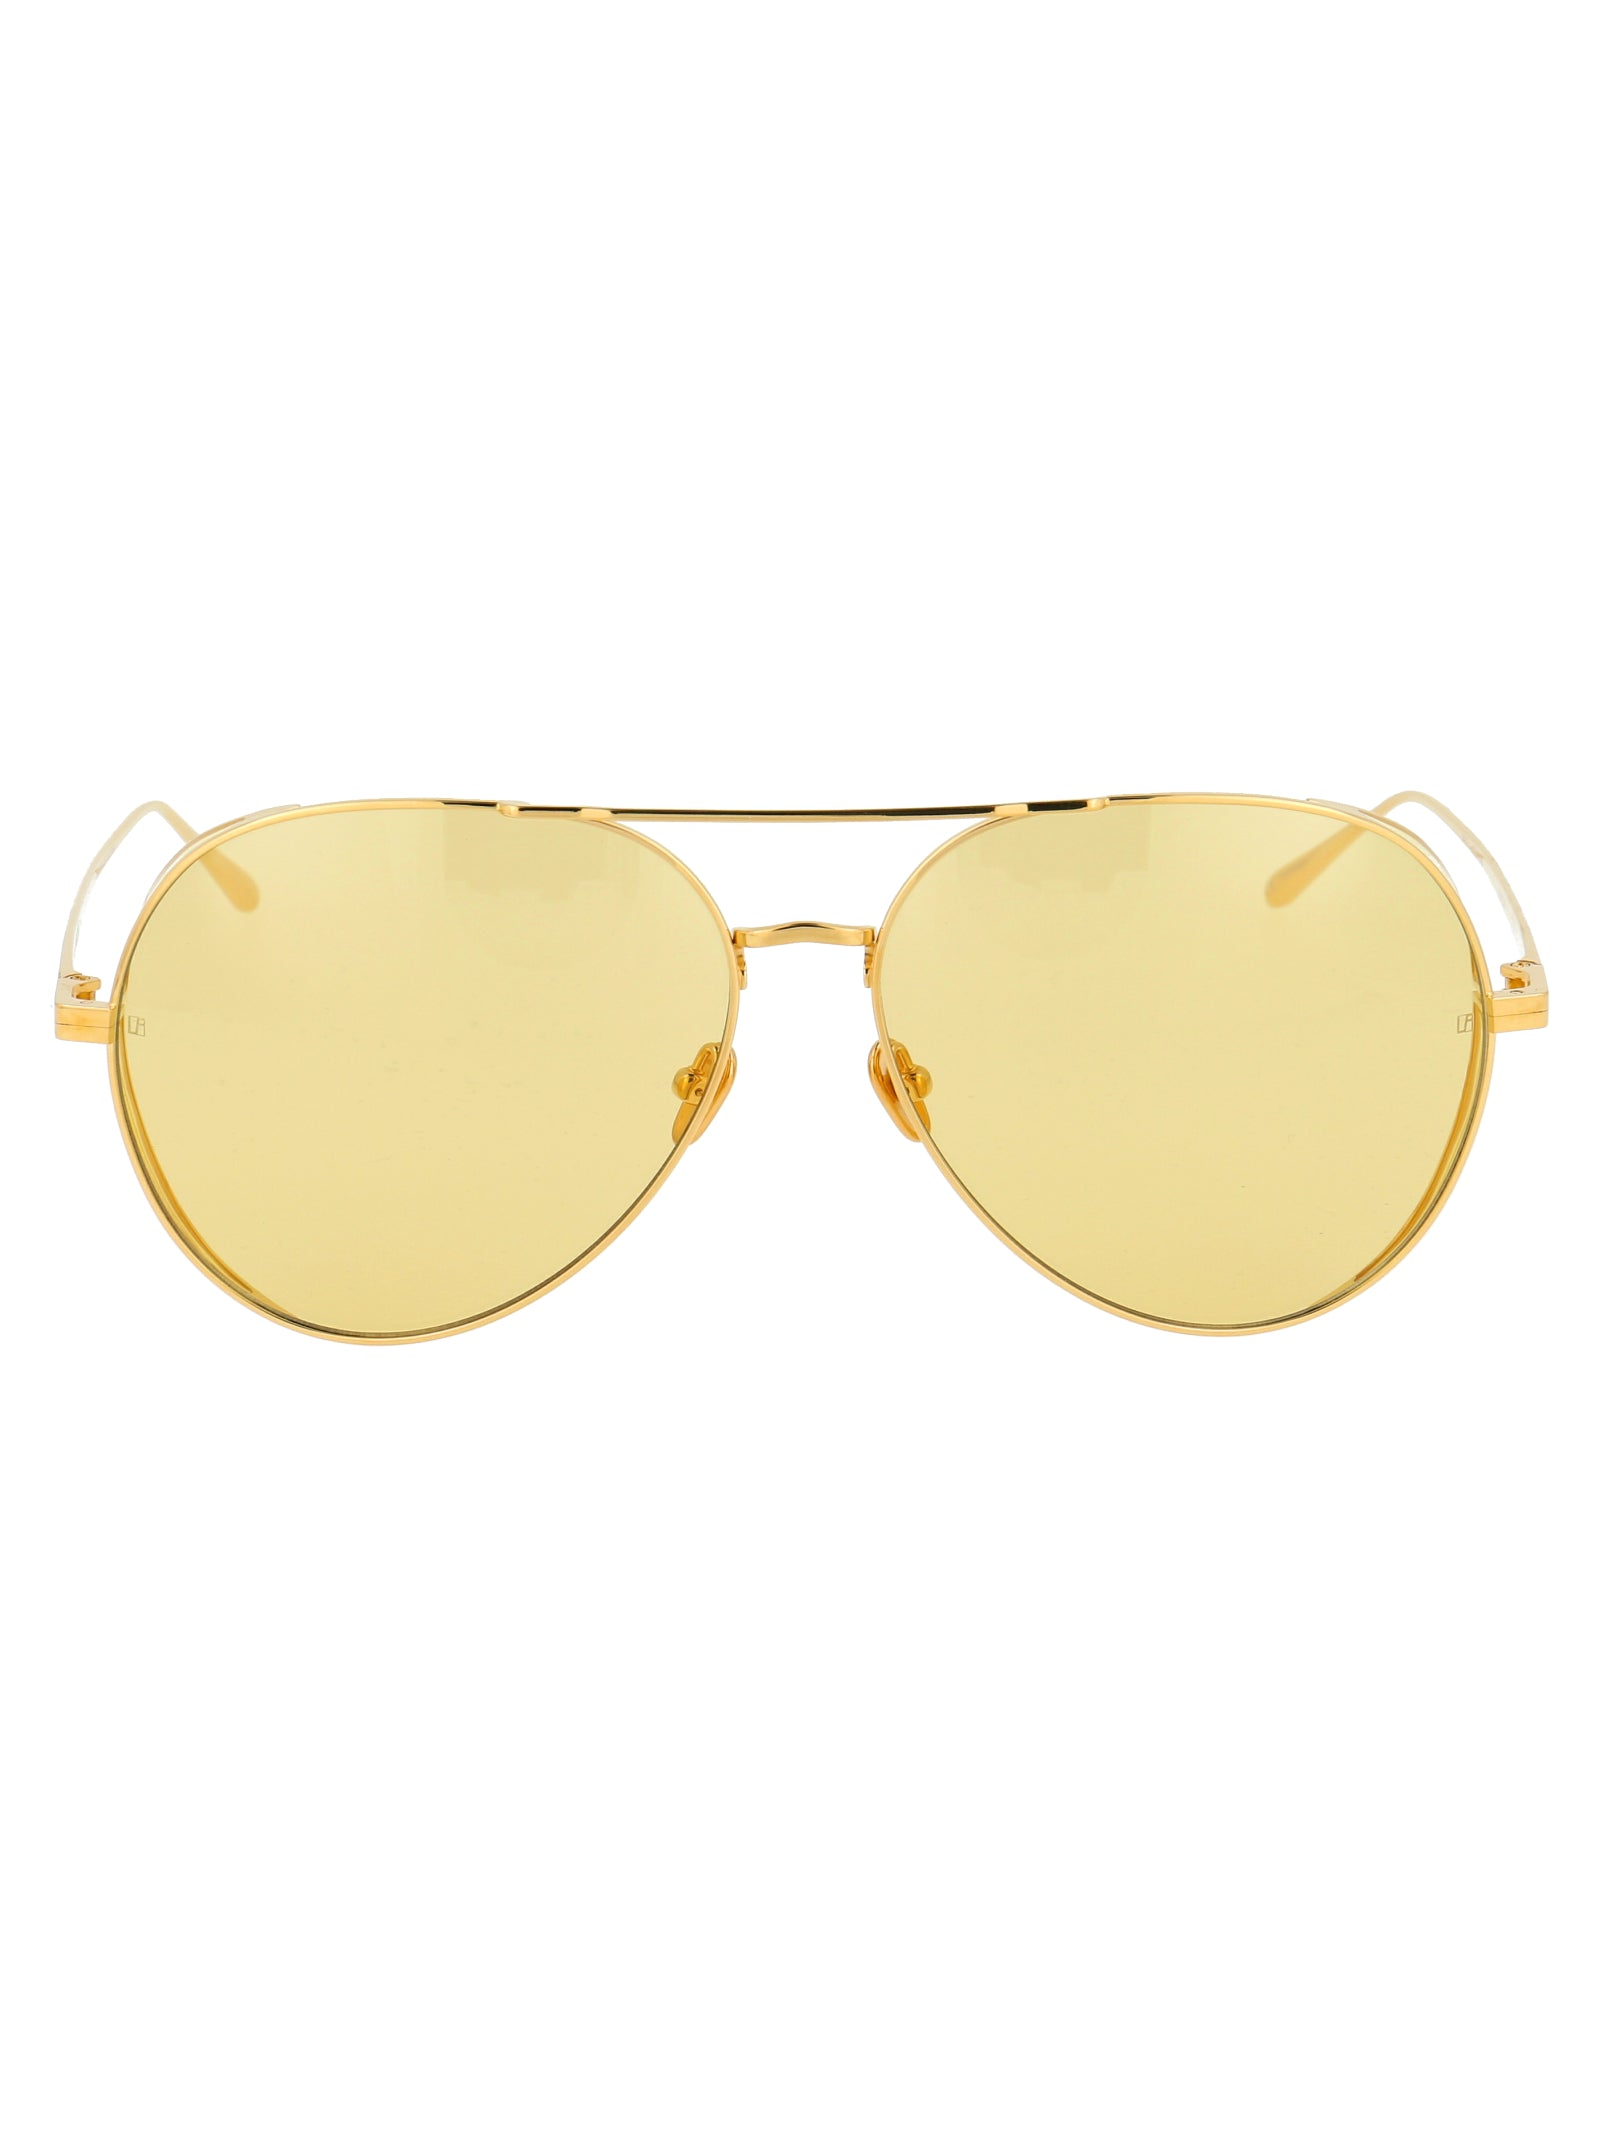 Linda Farrow Sunglasses LINDA FARROW TINTED AVIATOR SUNGLASSES